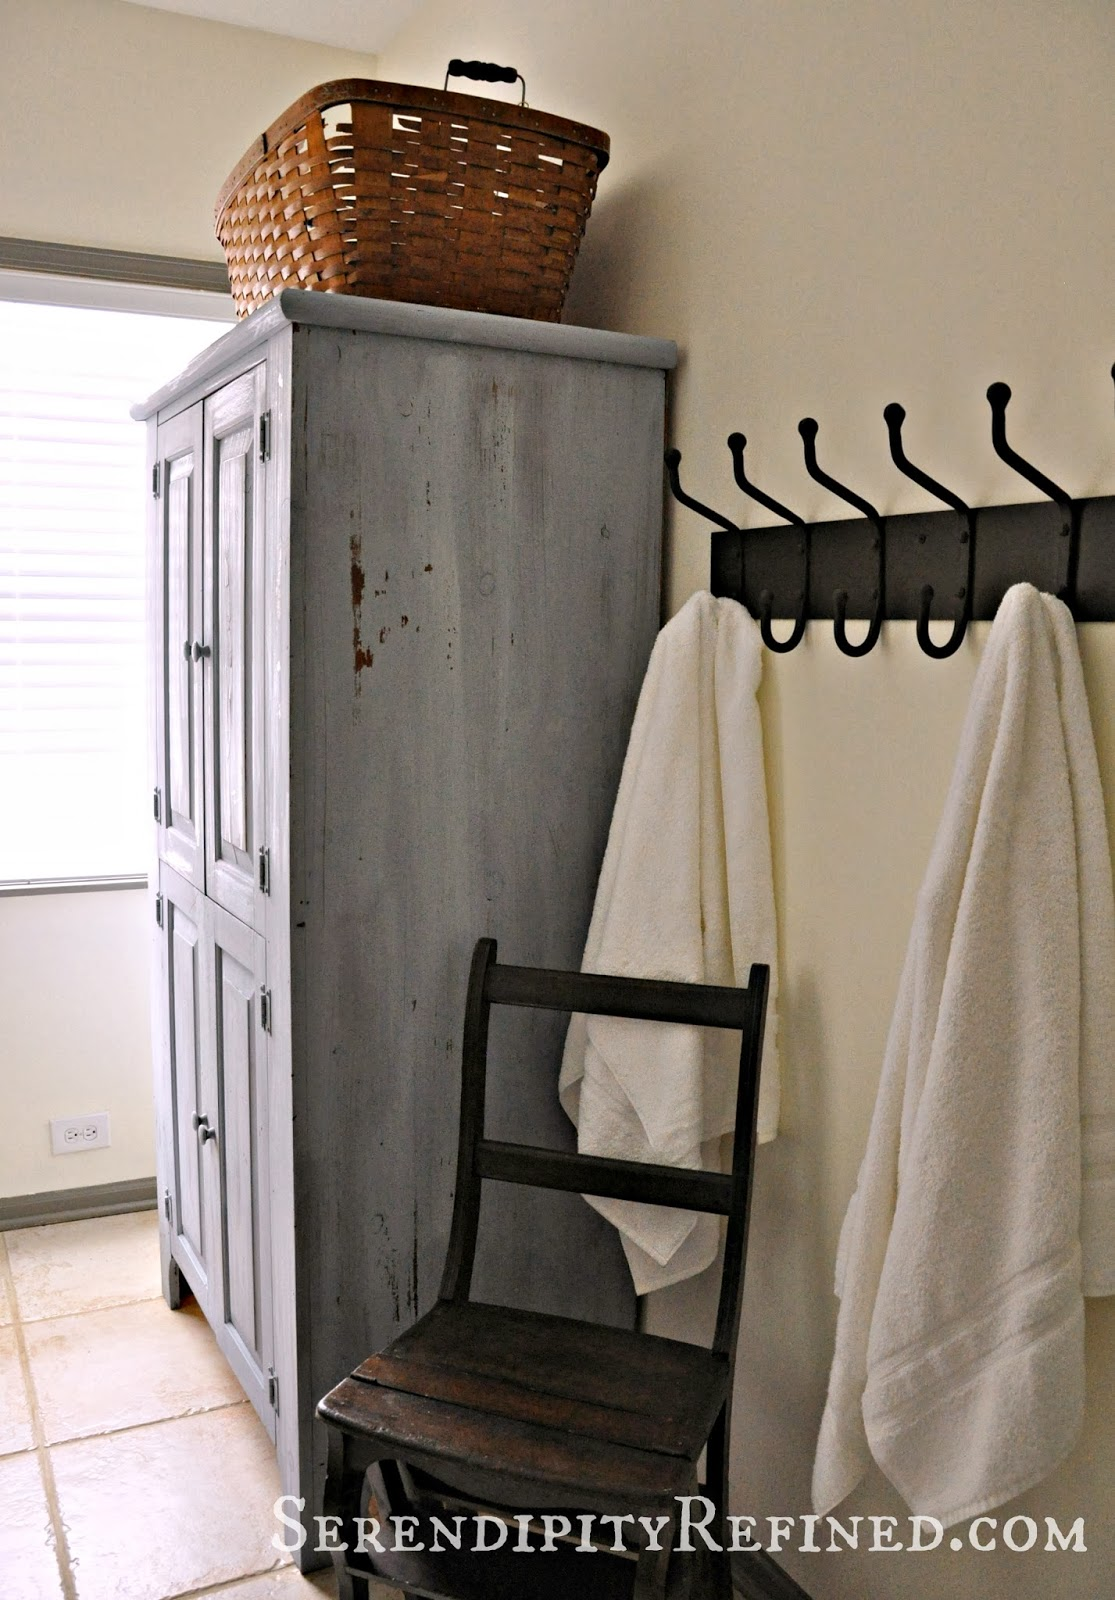 Inspirational I loved transforming my humble pine cupboard into our new bathroom linen cabinet using Miss Mustard Seed Shutter Gray Milk Paint